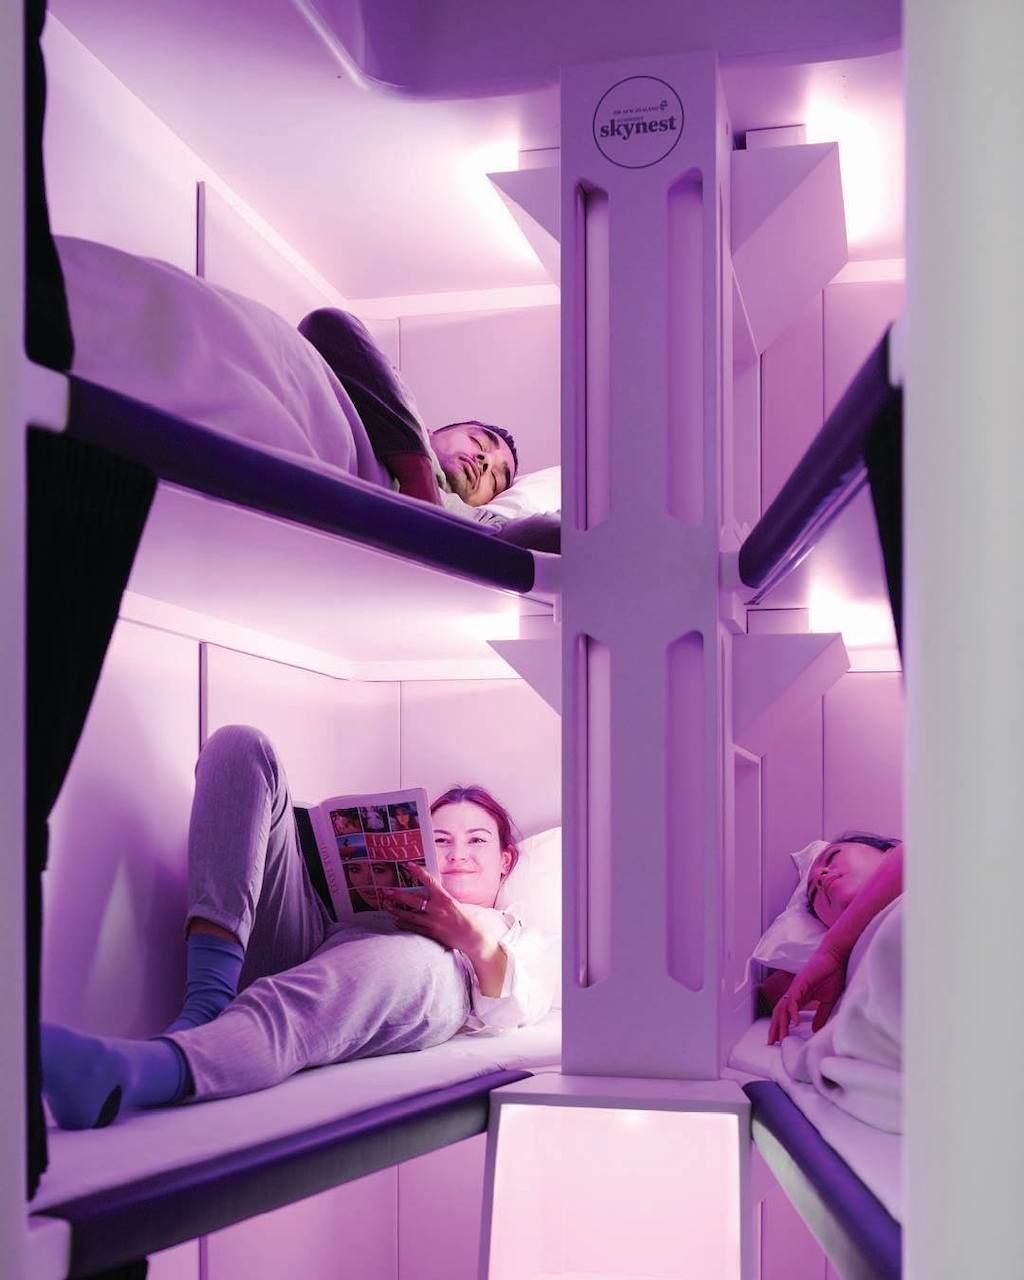 Sleeper pods in Air New Zealand